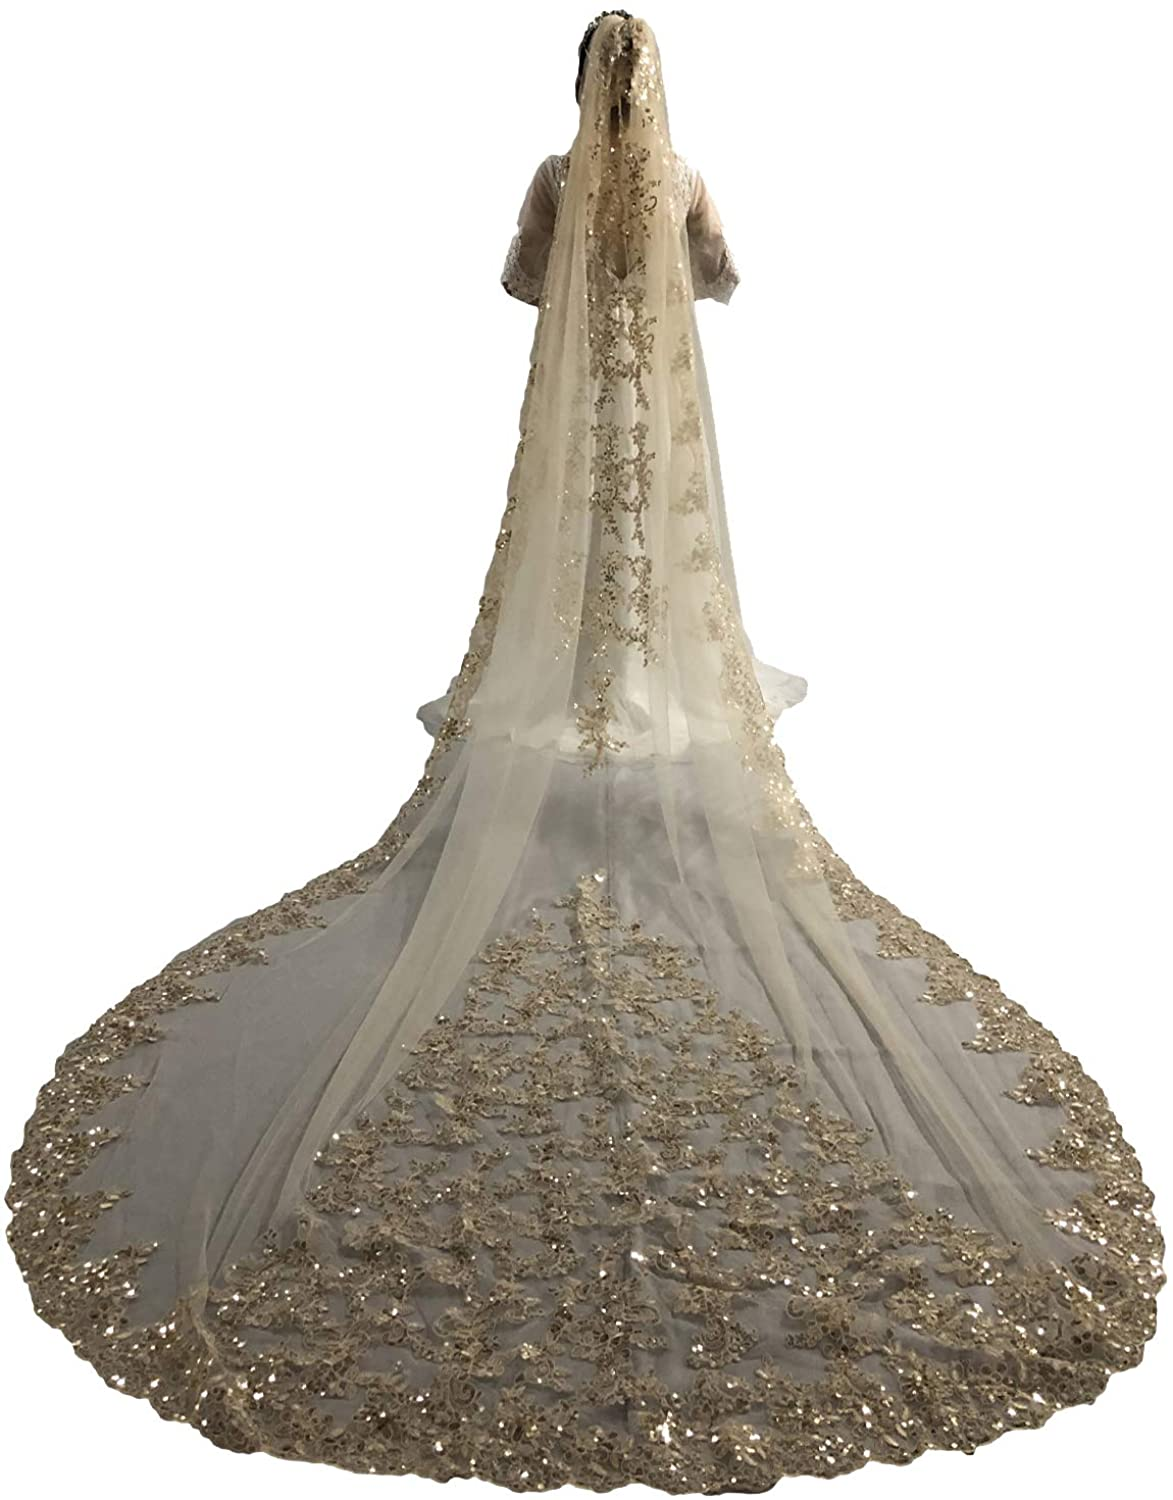 Faithclover Wedding Veils Cathedral Length 1 Tier Sequins Lace Applique with Comb